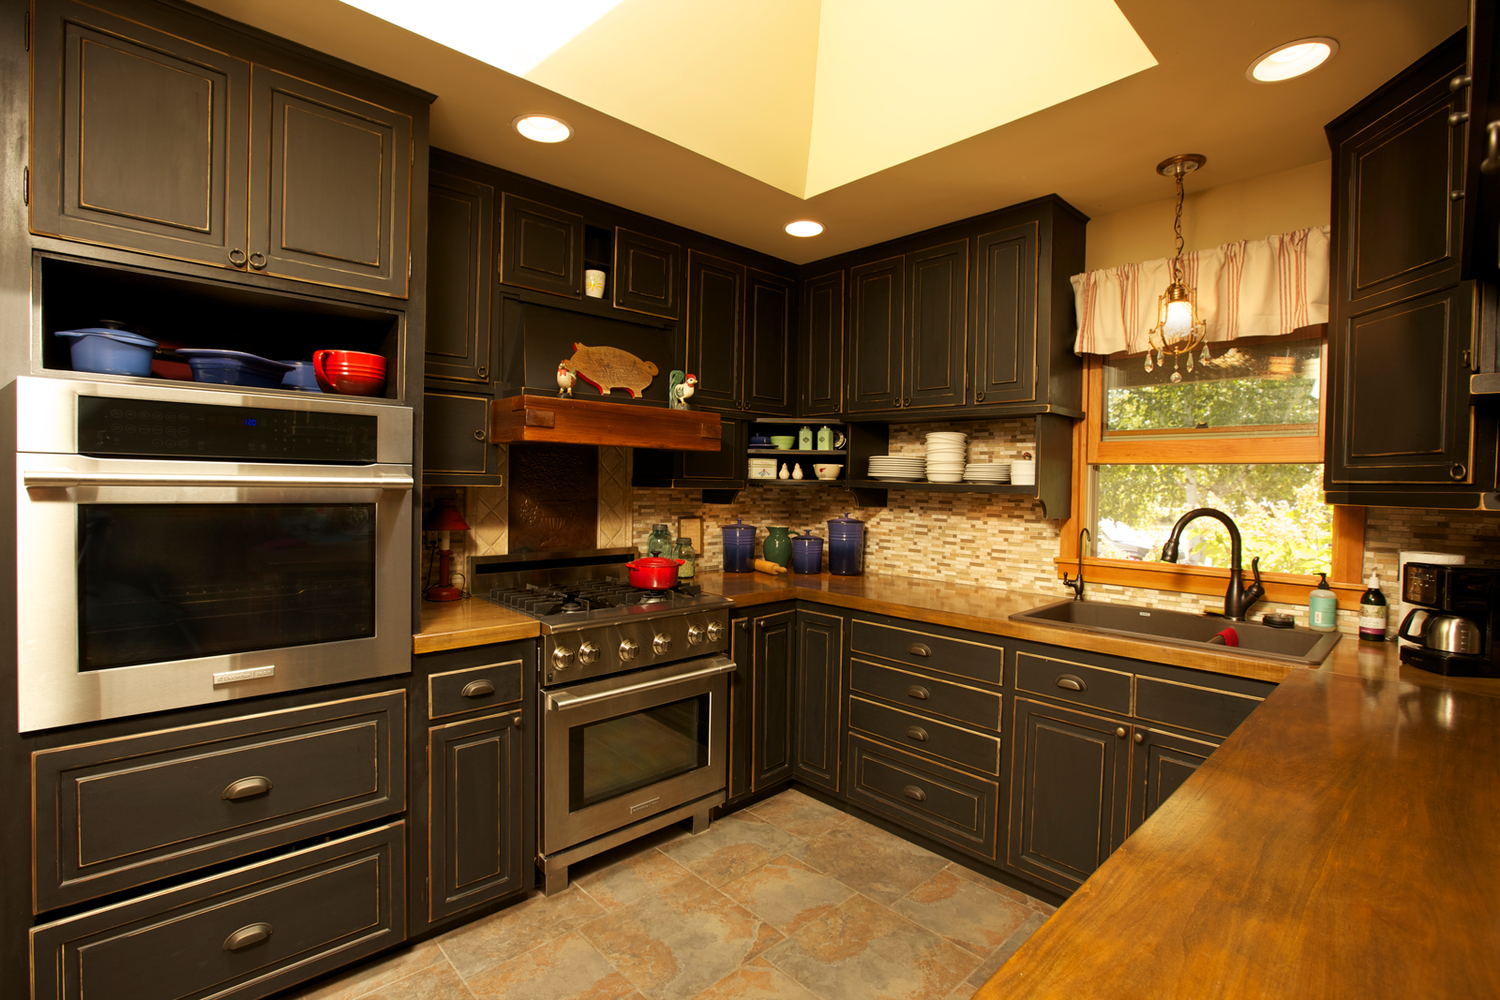 Refinishing Cabinets Vs Replacing Get Your Dream Kitchen Elite Finisher Inc